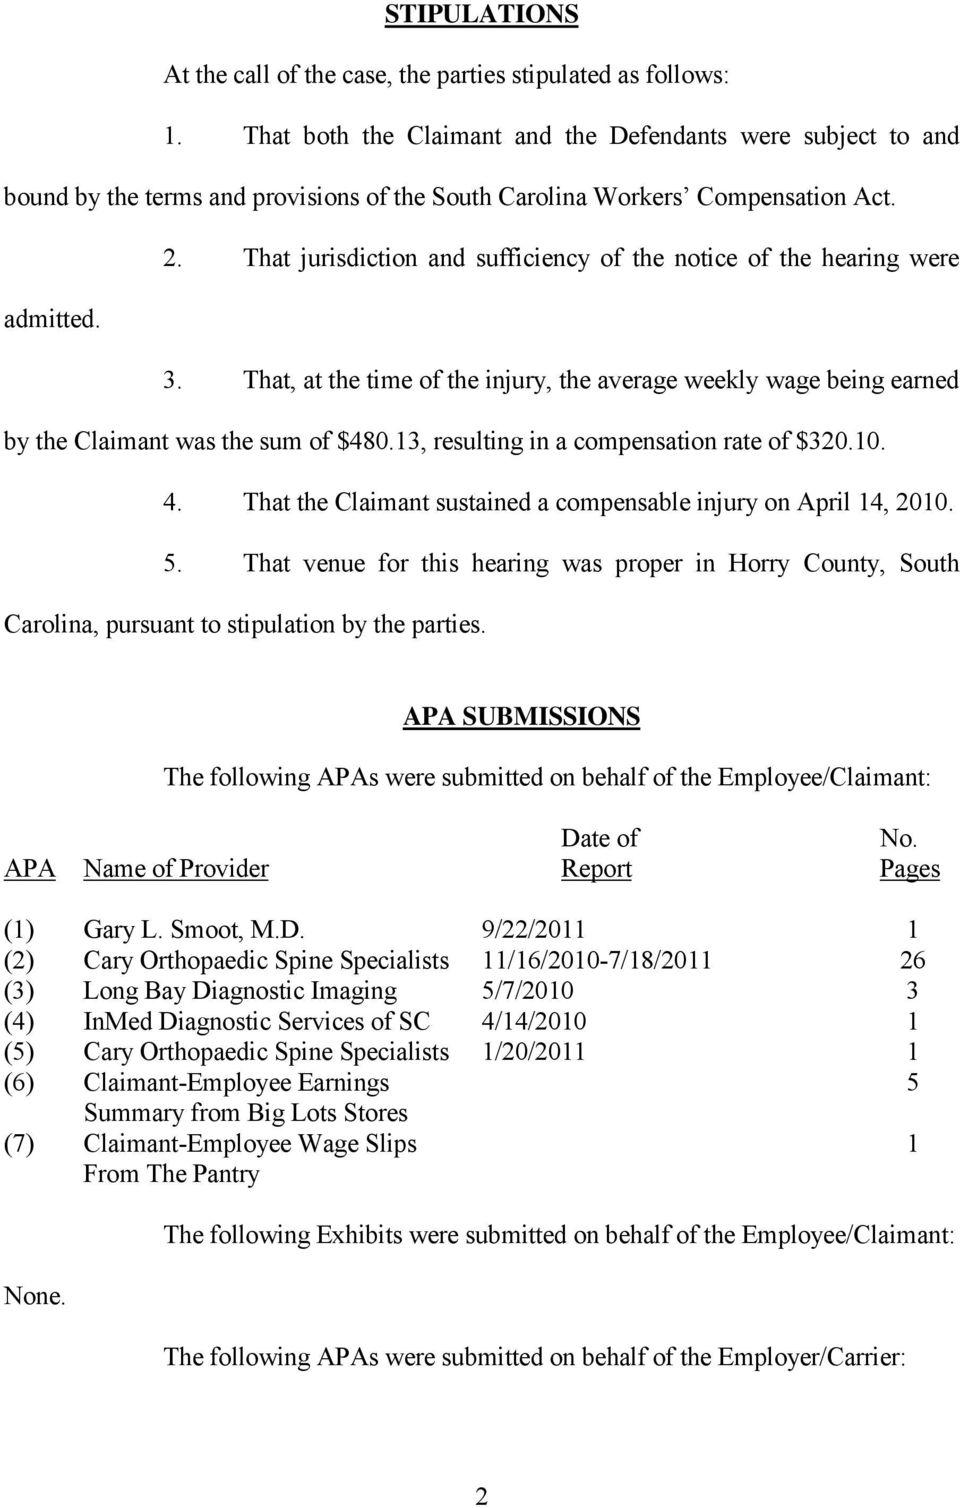 That jurisdiction and sufficiency of the notice of the hearing were admitted. 3. That, at the time of the injury, the average weekly wage being earned by the Claimant was the sum of $480.